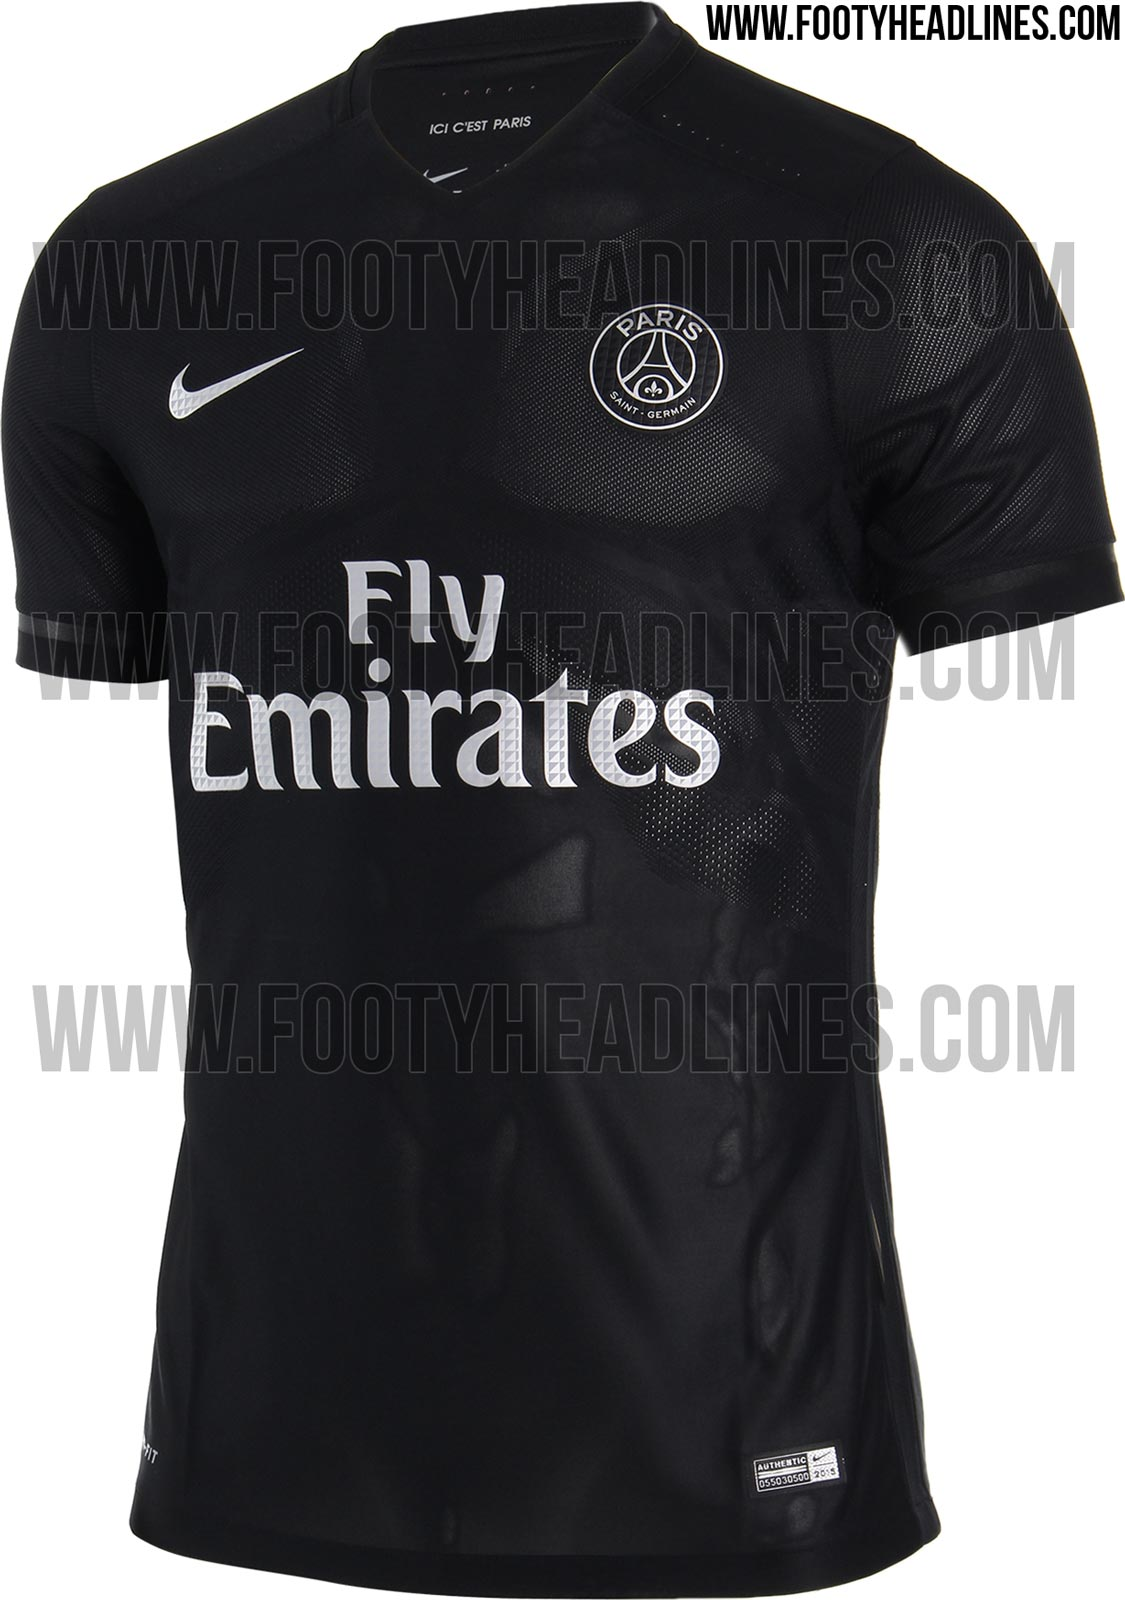 512x512 galatasaray home kit pictures free download - The New Nike Psg 2015 2016 Jerseys Introduce Clean Designs For The French Ligue 1 Club The Psg Home Jersey Is Dark Blue The Away Kit Is White And The